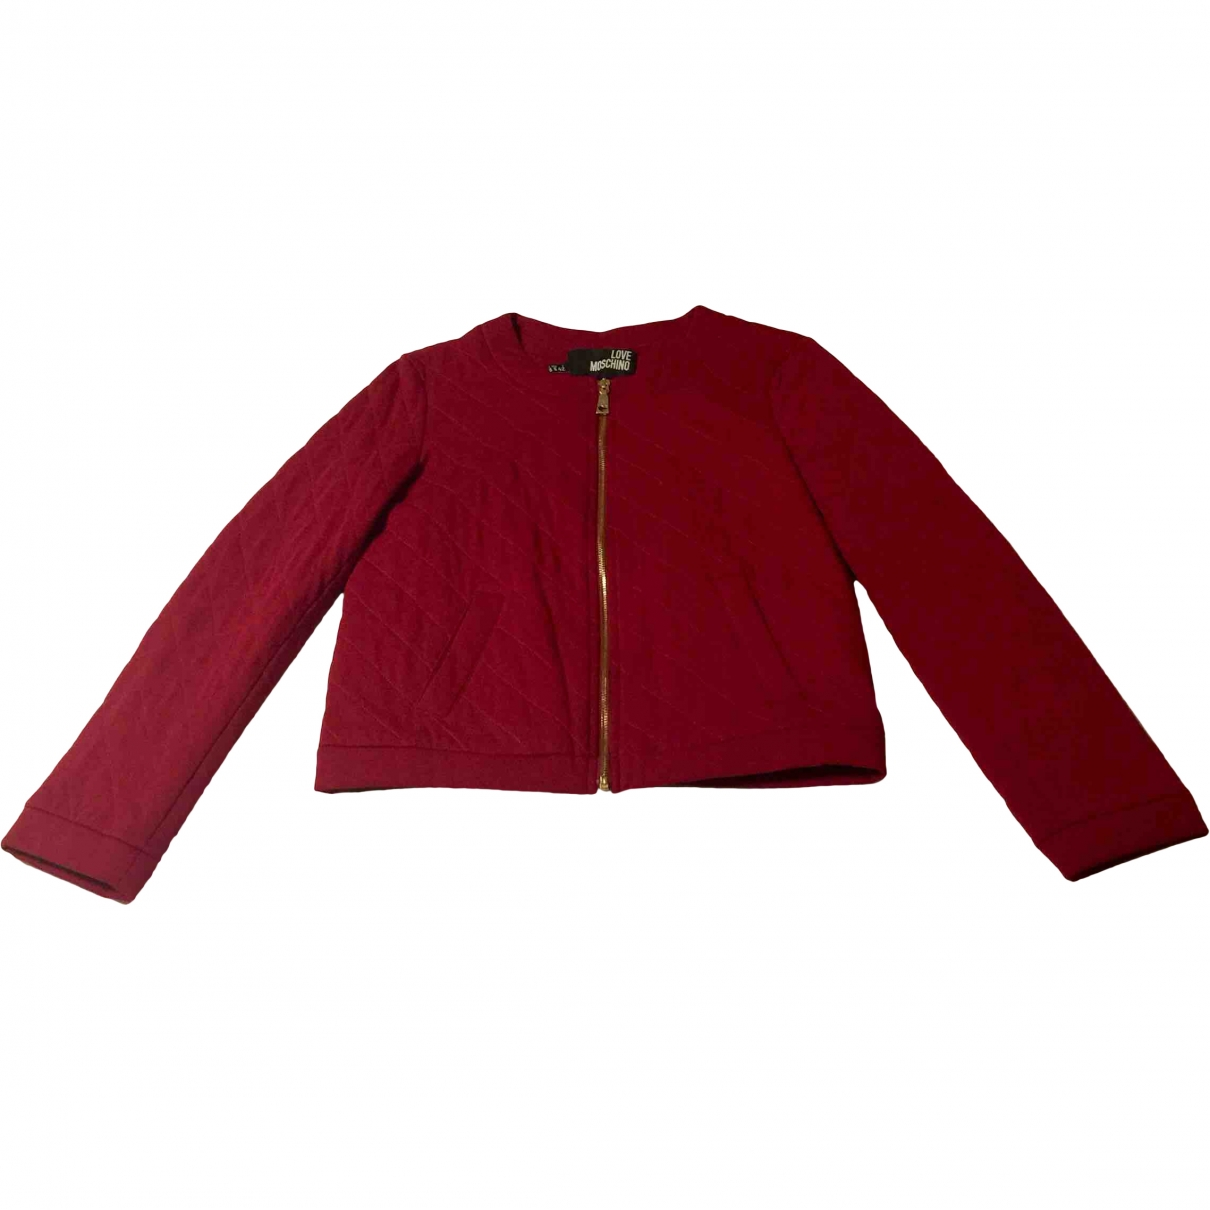 Moschino Love \N Red Cotton jacket for Women 42 IT